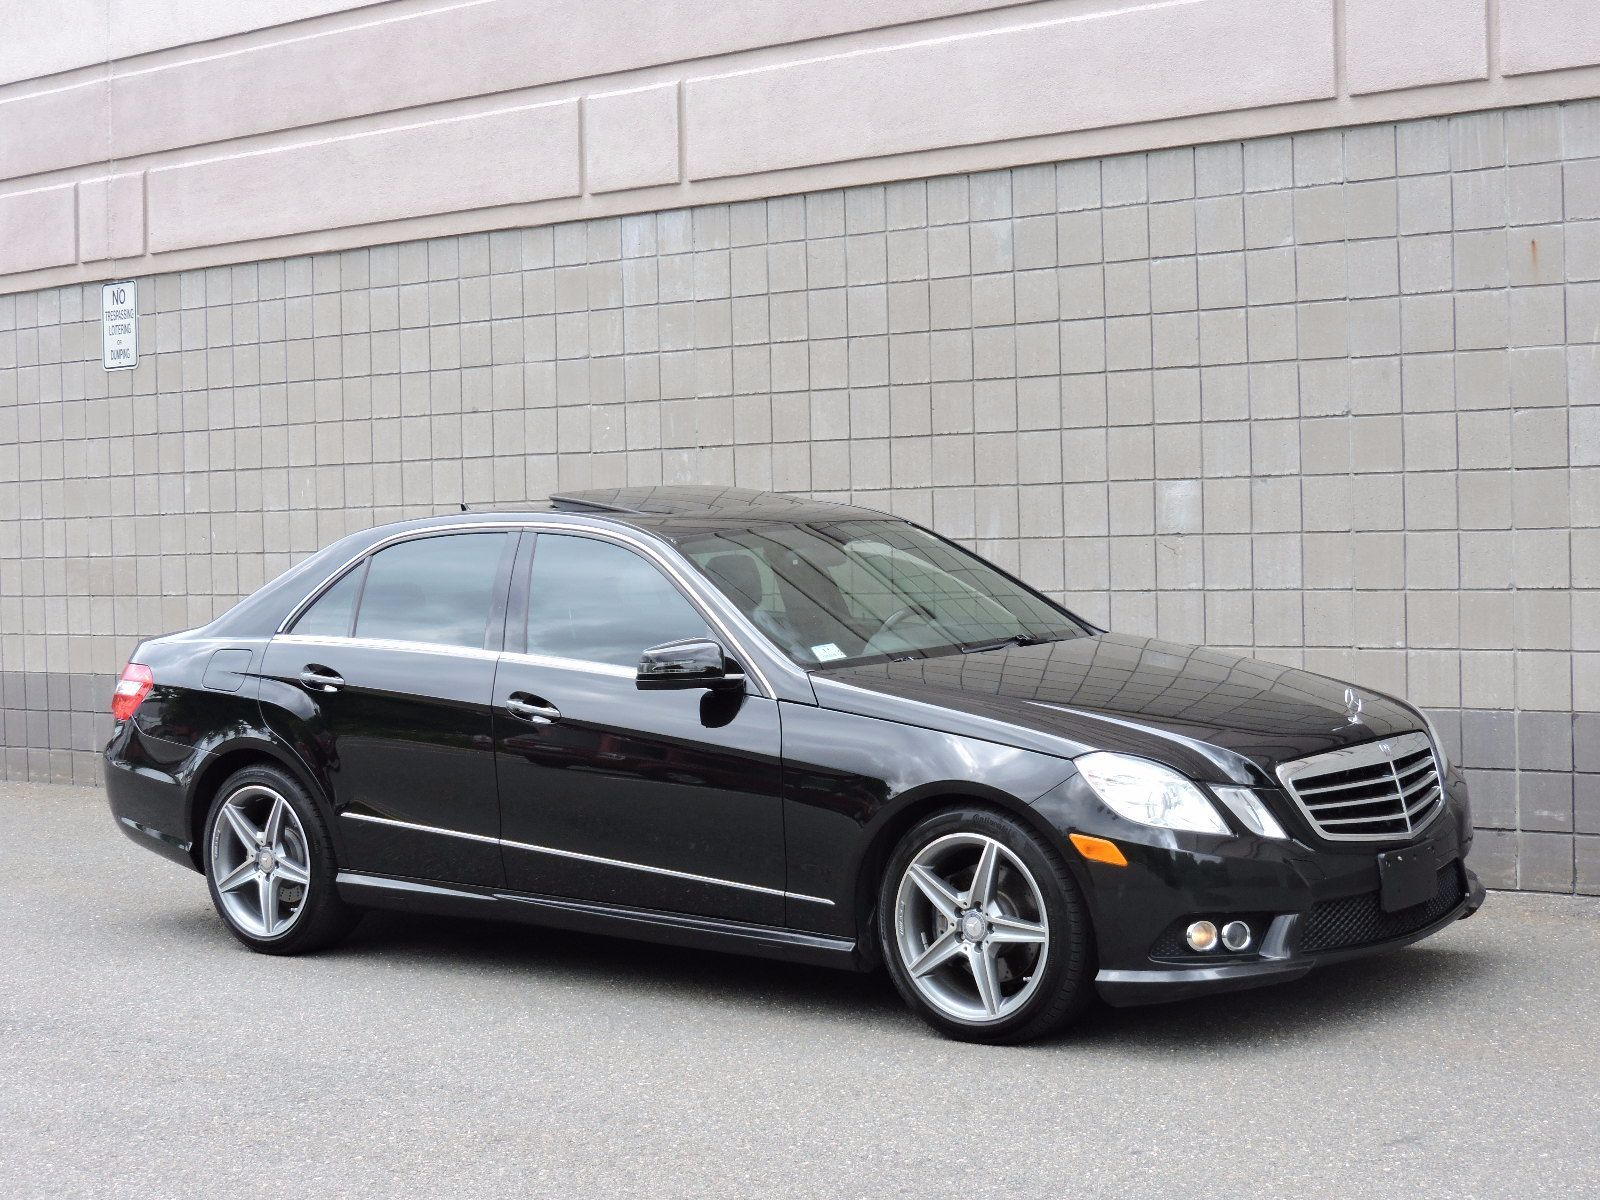 used 2010 mercedes benz e class e350 sport at saugus auto mall. Black Bedroom Furniture Sets. Home Design Ideas